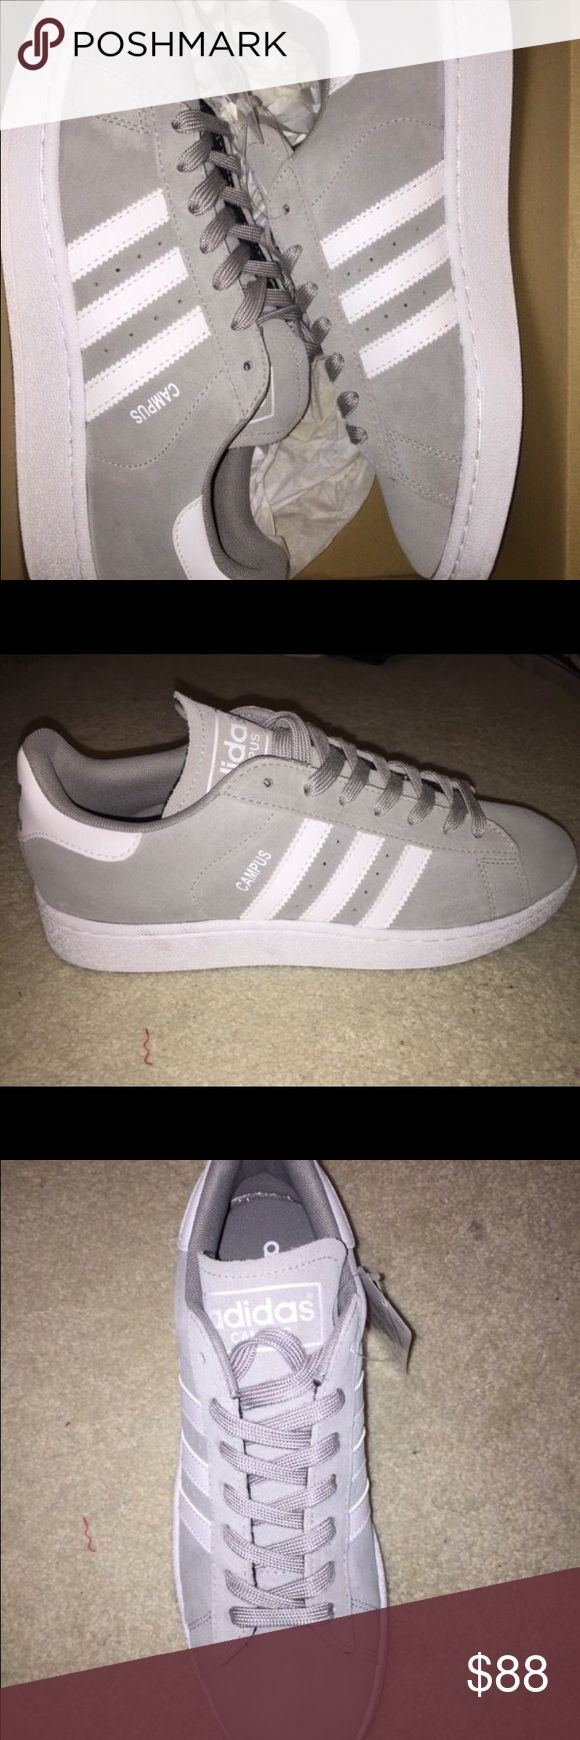 Adidas Campus 2 Sneakers Adidas Campus 2 sneakers in grey. Men's size 9. Never worn. Adidas Shoes Sneakers